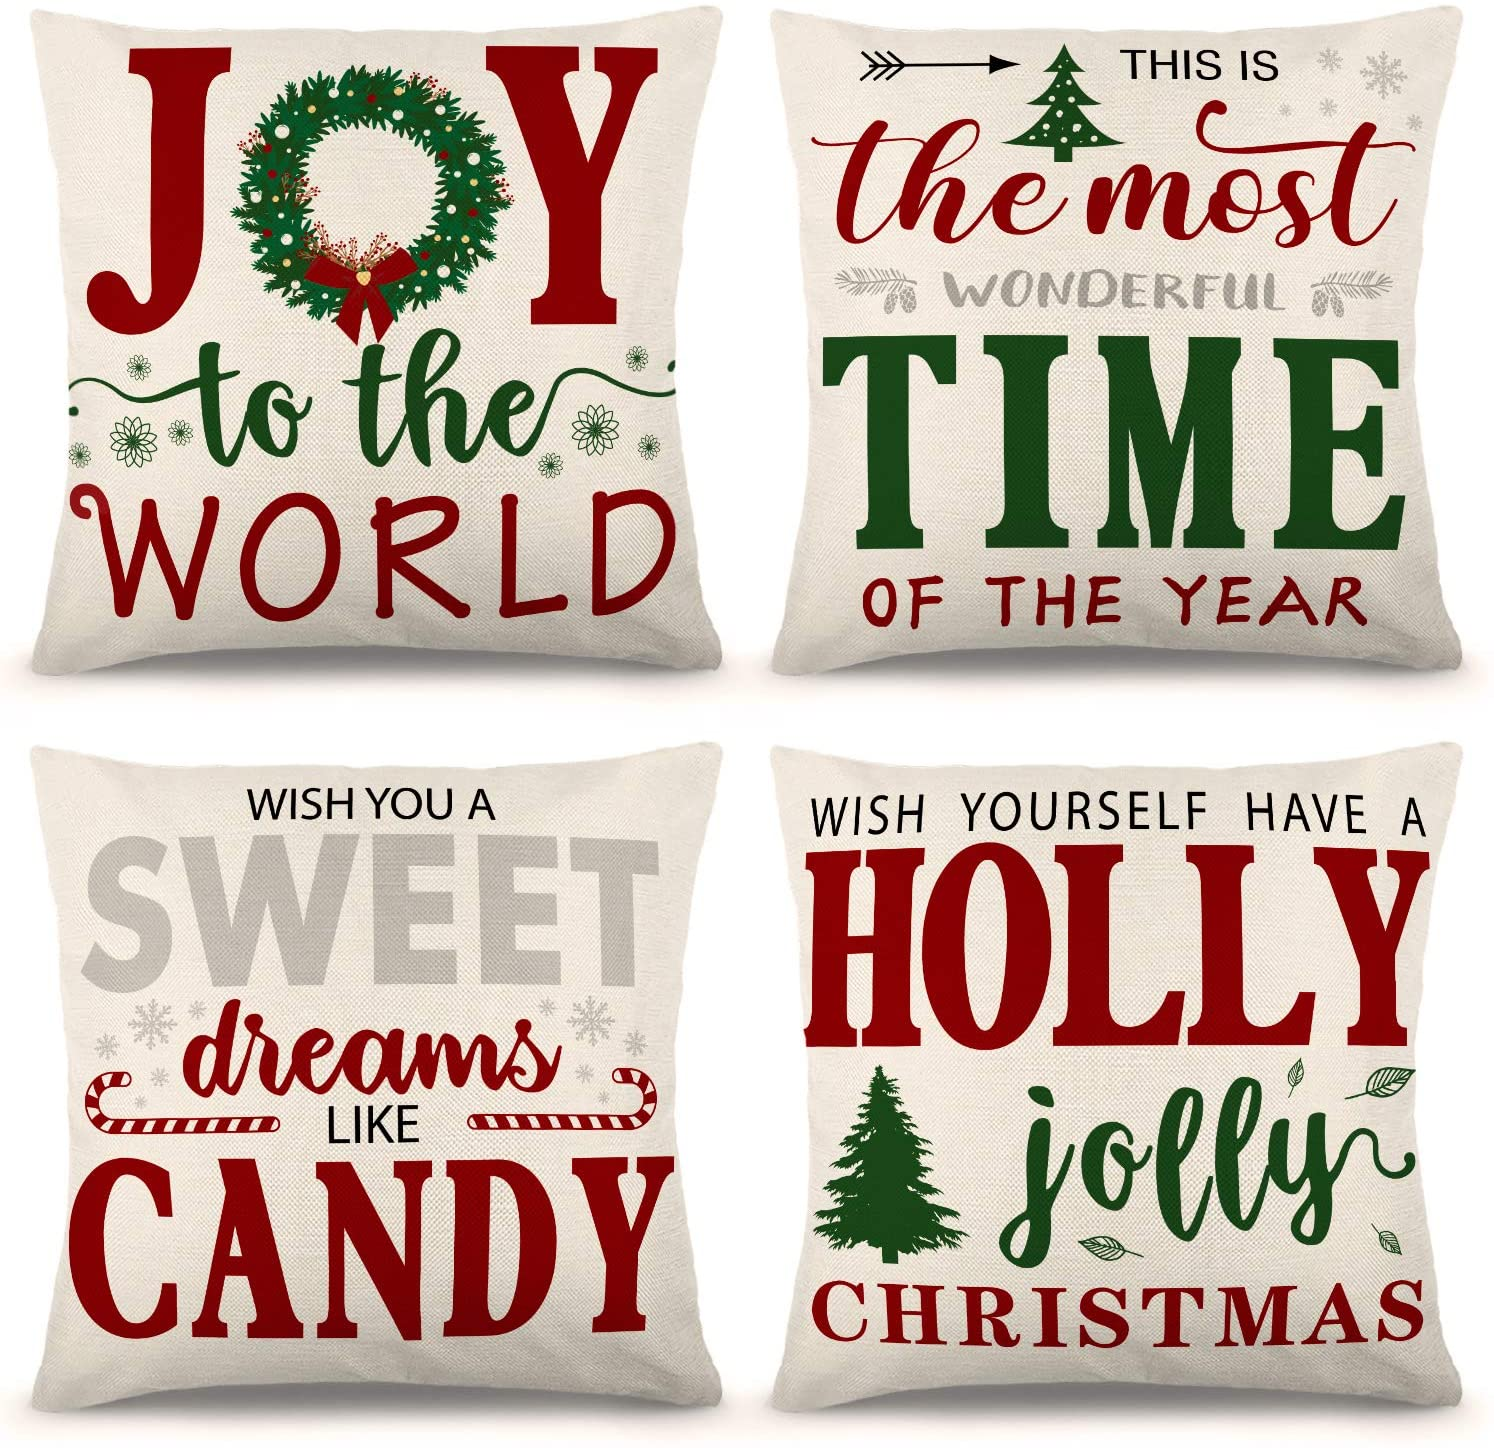 ZJHAI Christmas Pillow Covers 18×18 Inch Set of 4 Farmhouse Pillow Covers Holiday Rustic Linen Pillow Case for Sofa Couch Christmas Decorations Throw Pillow Covers